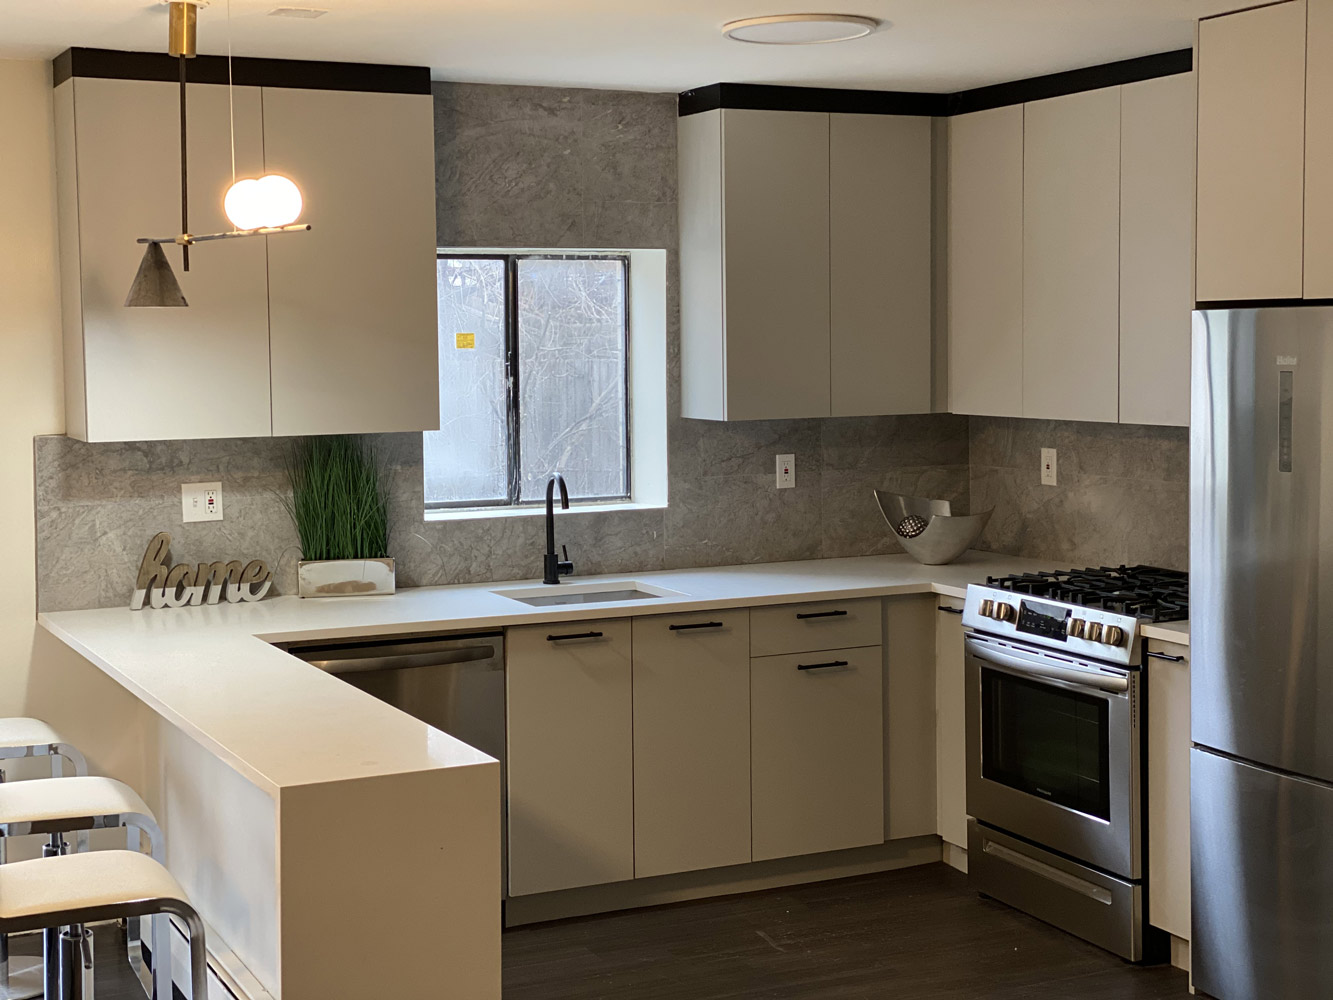 White Kitchen Fixtures at Riverview at Nyack Apartments in Nyack, New York